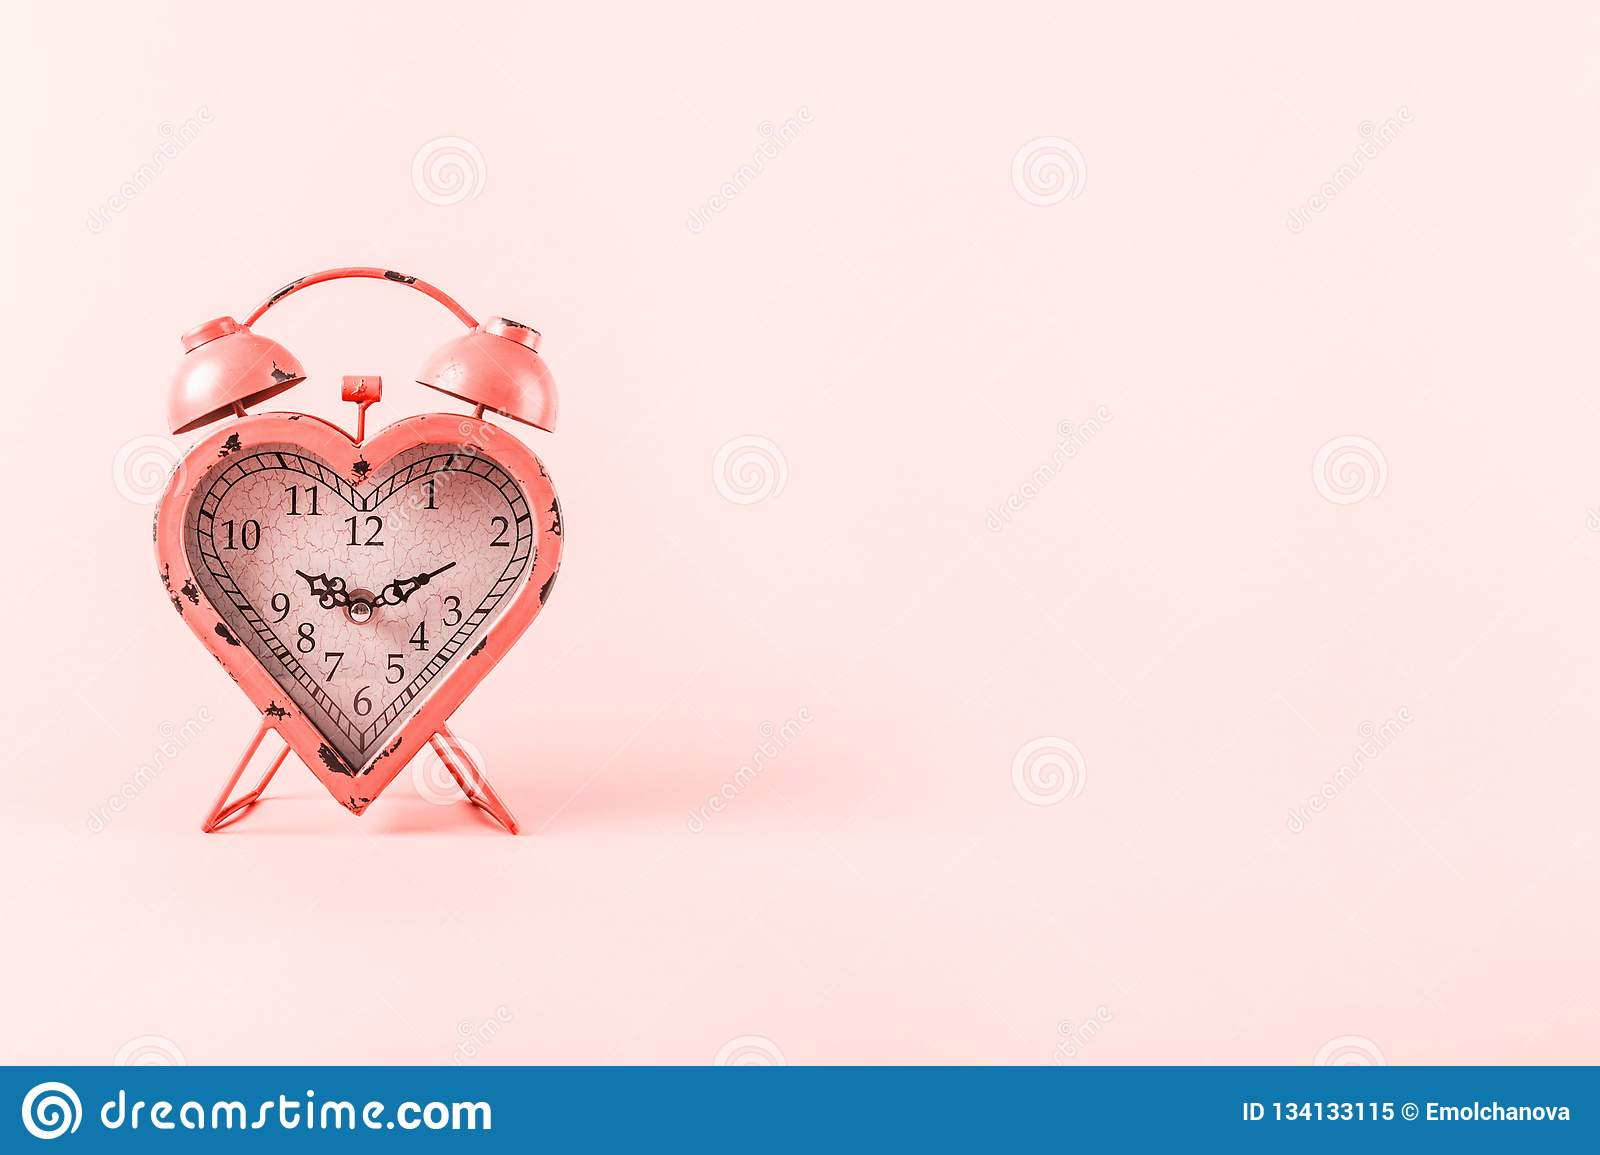 Heart shaped clock on pink background. Valentines day and love infitity and duration concept . Living coral theme - color of the